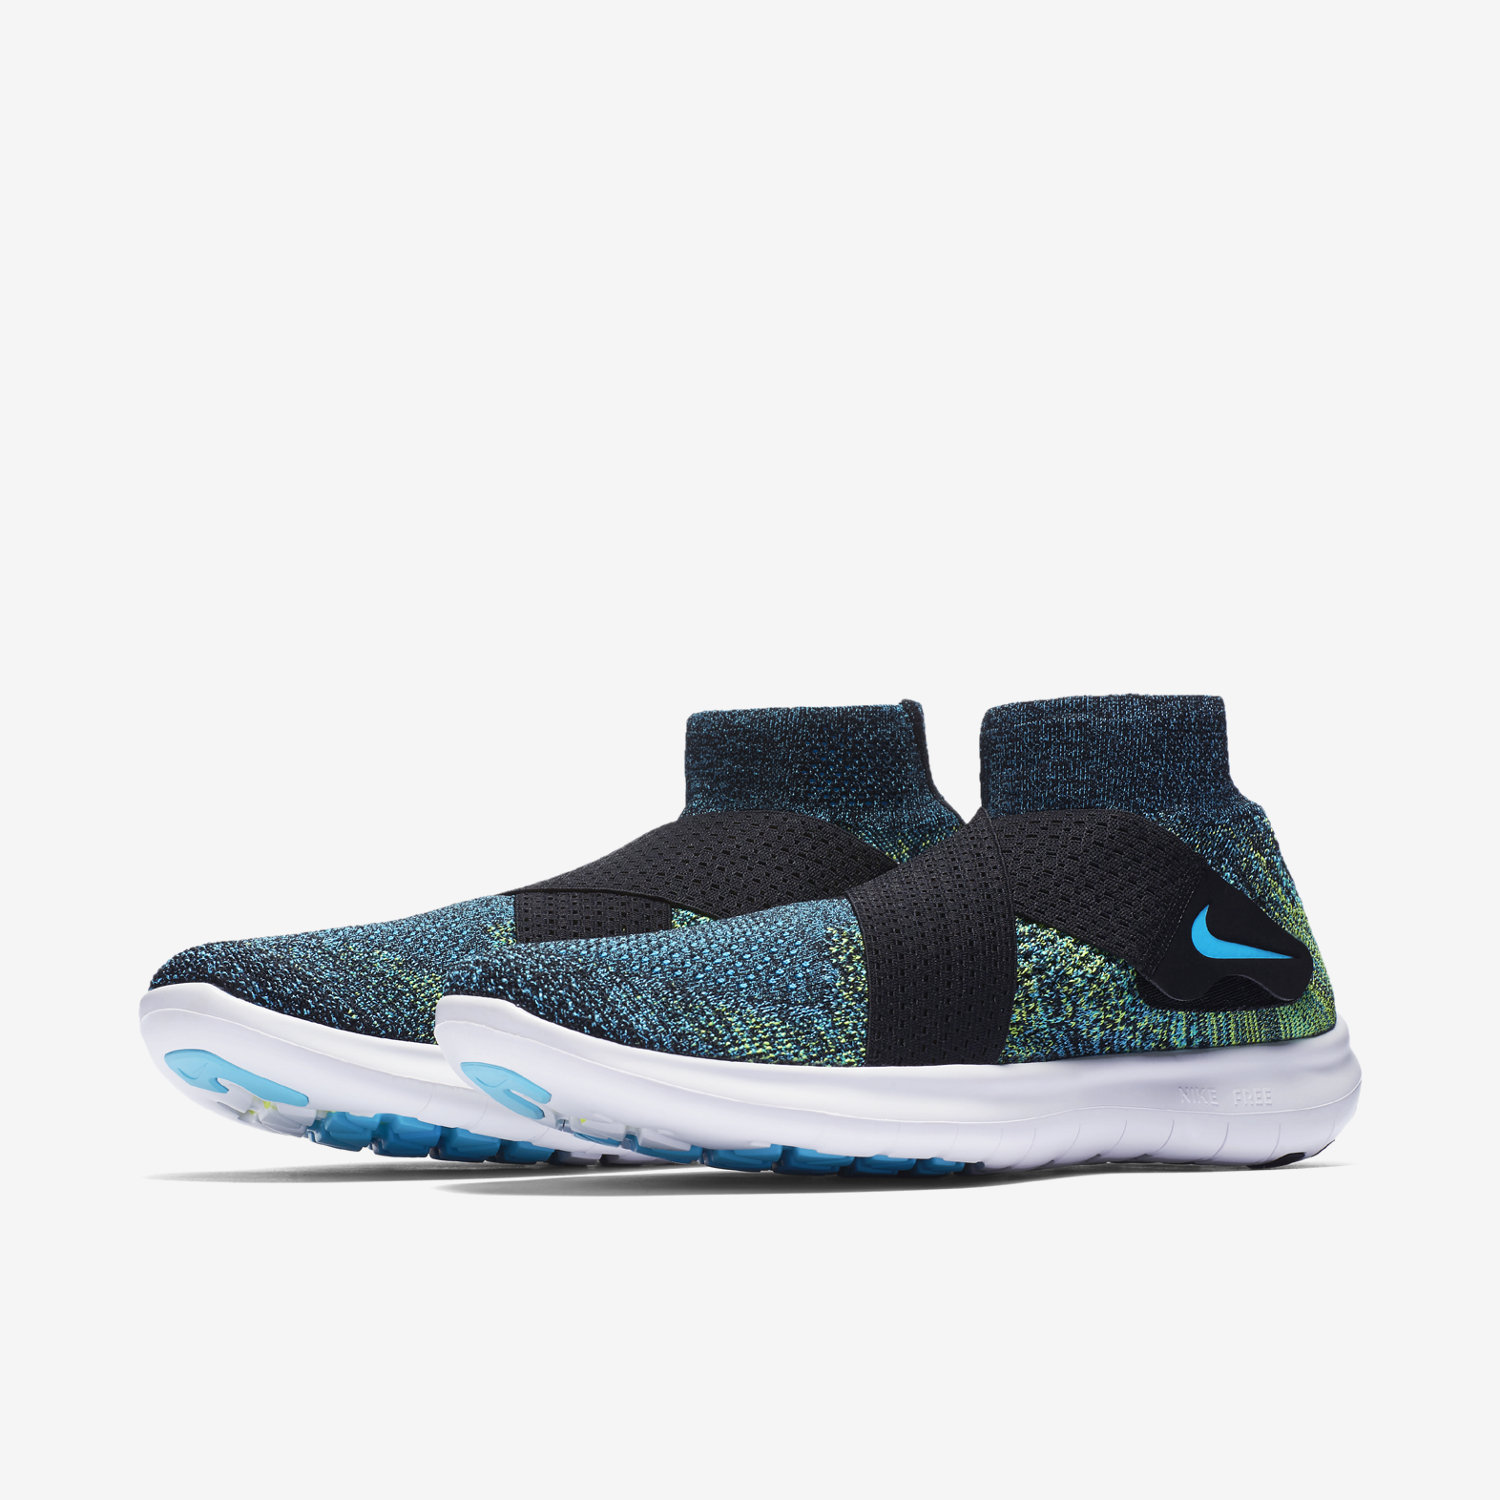 on sale 9a051 b999f nike free rn motion flyknit